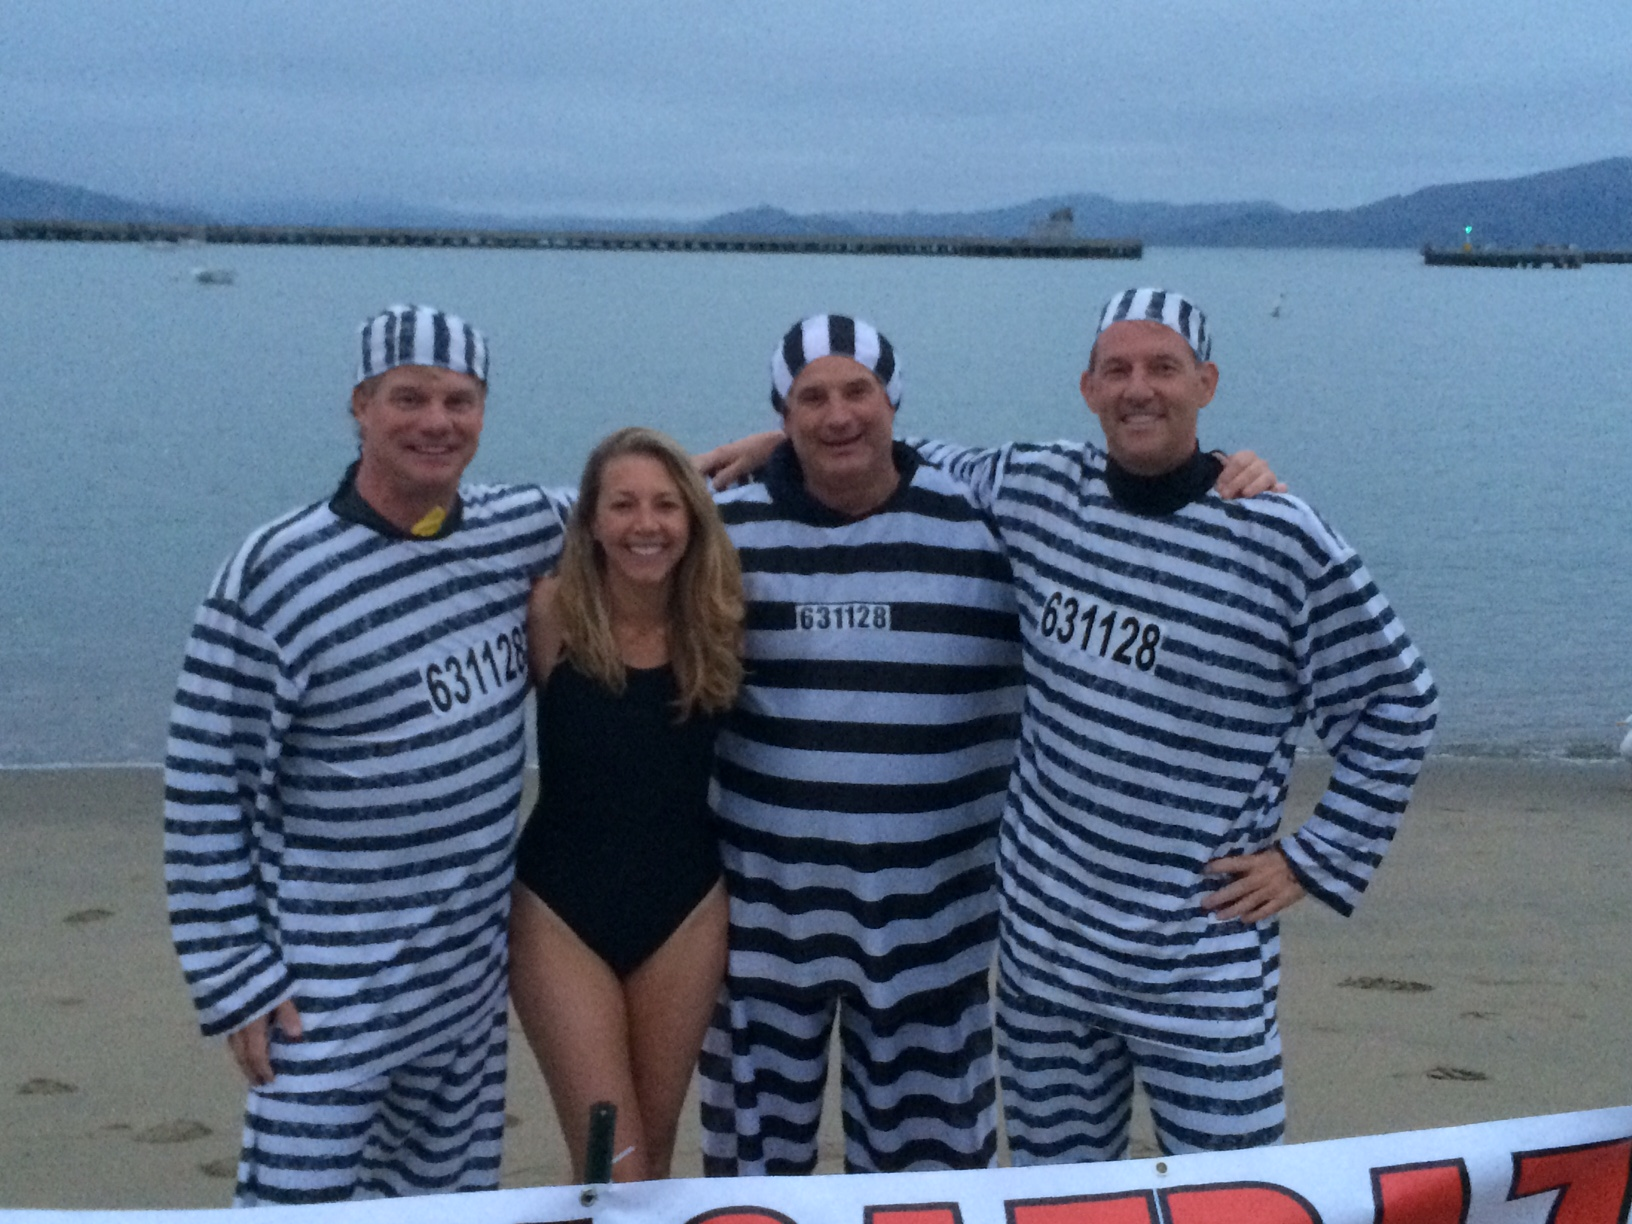 Before the race, three swimmers donned prison garb over their wetsuits and posed for photos near the finish line.